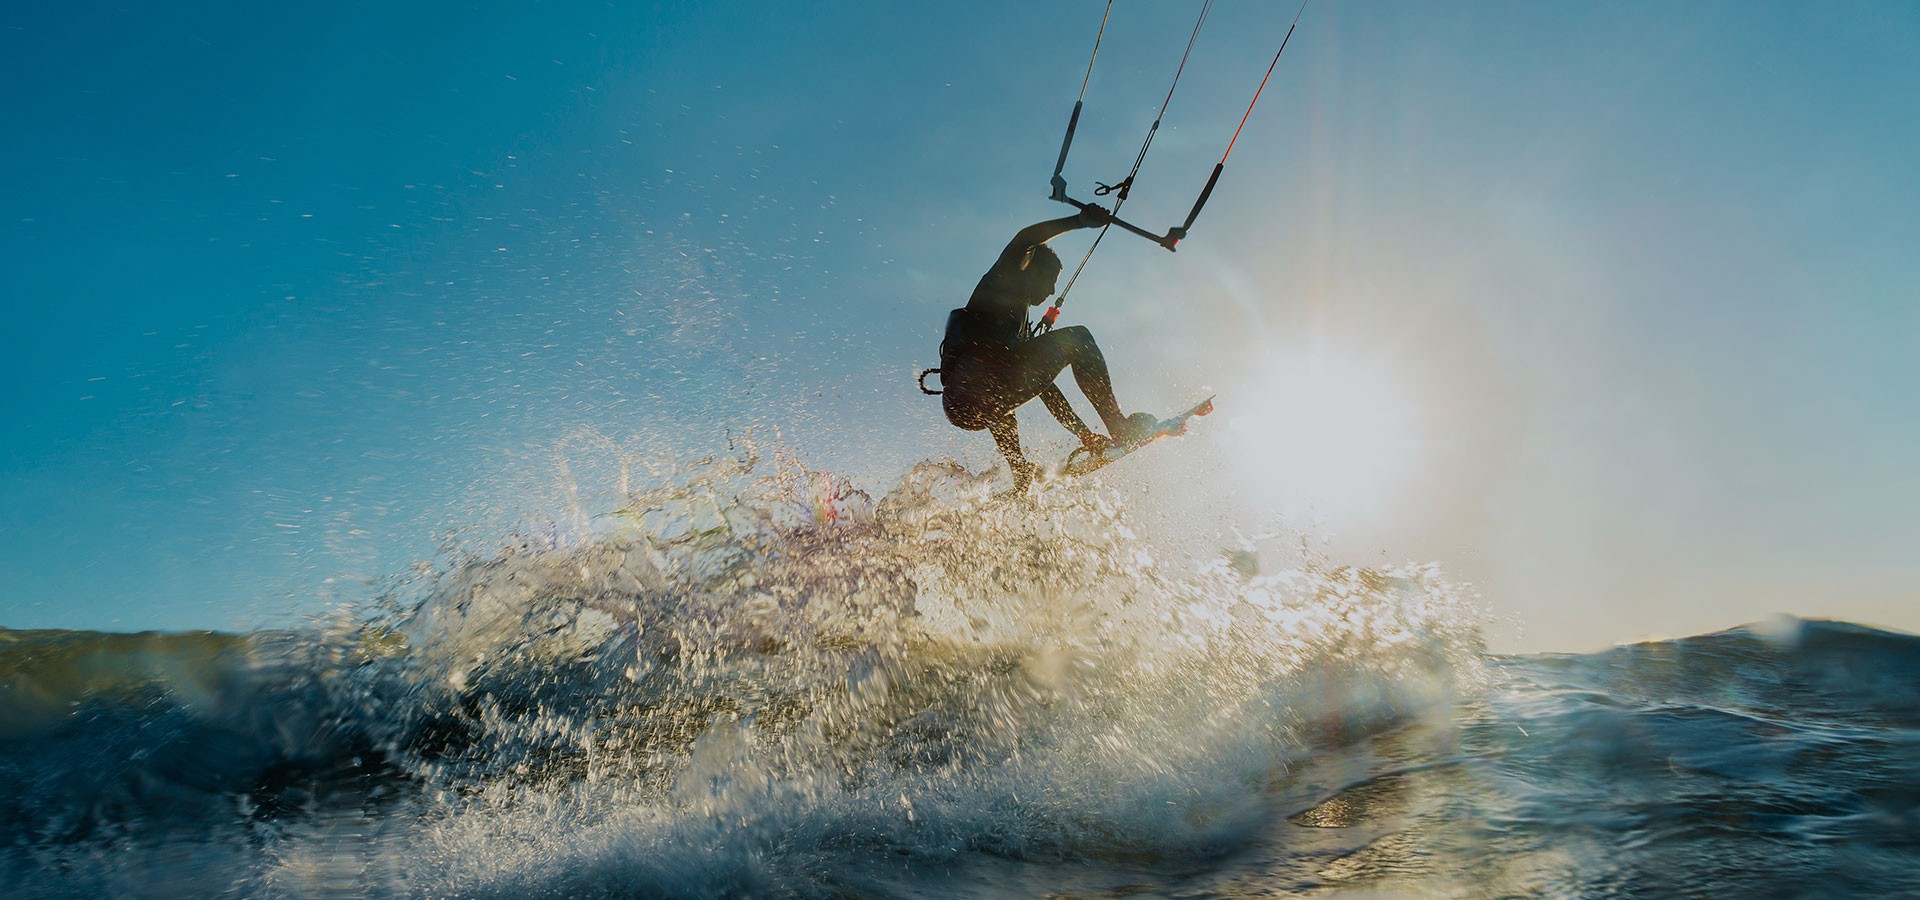 kitesurfer riding waves